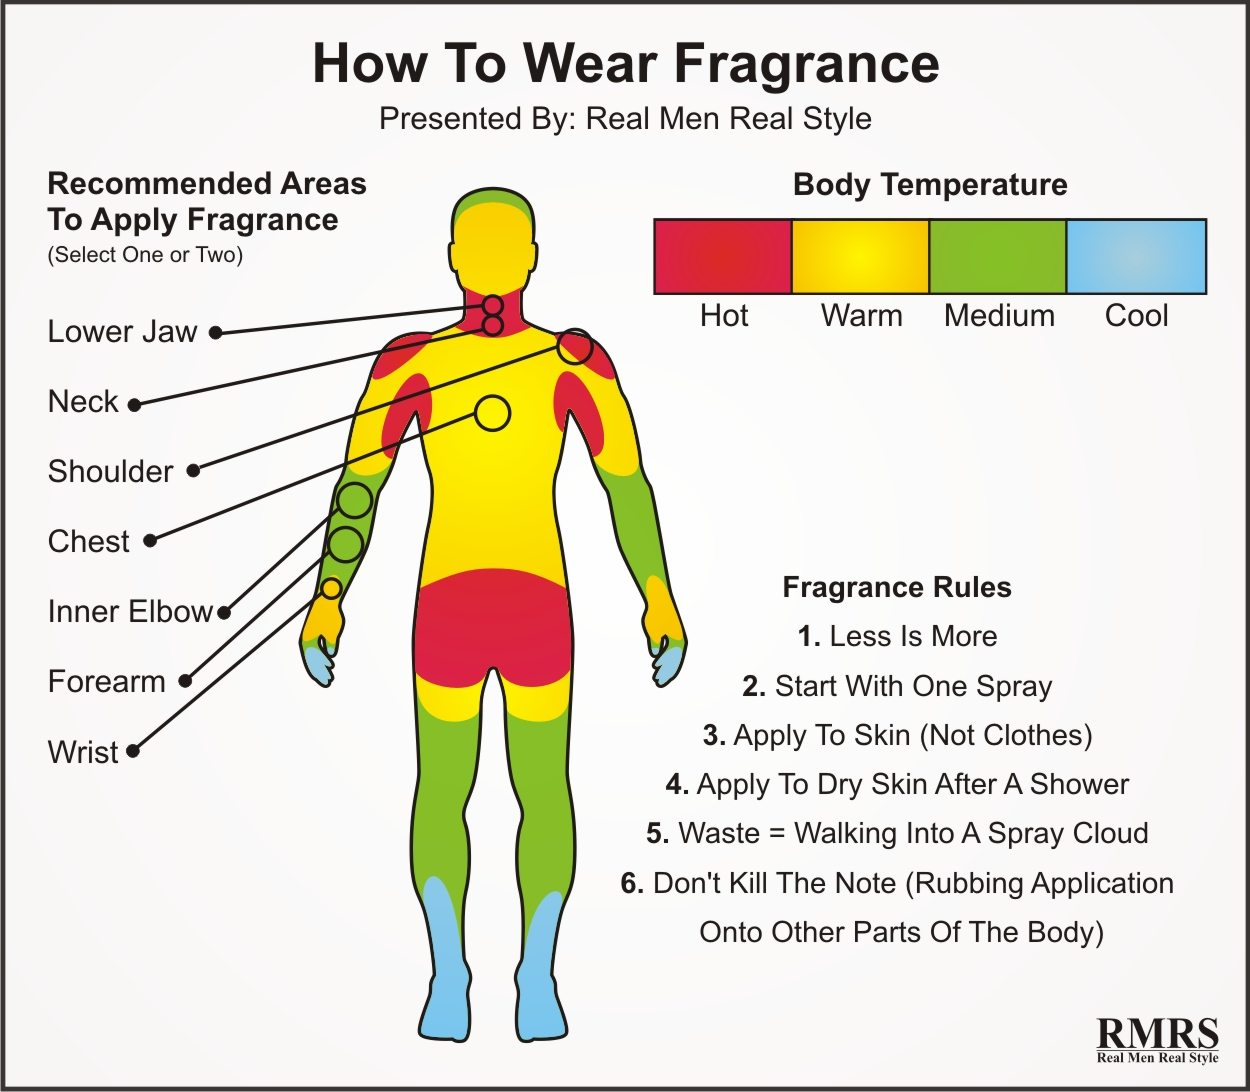 How To Wear Fragrance Infographic